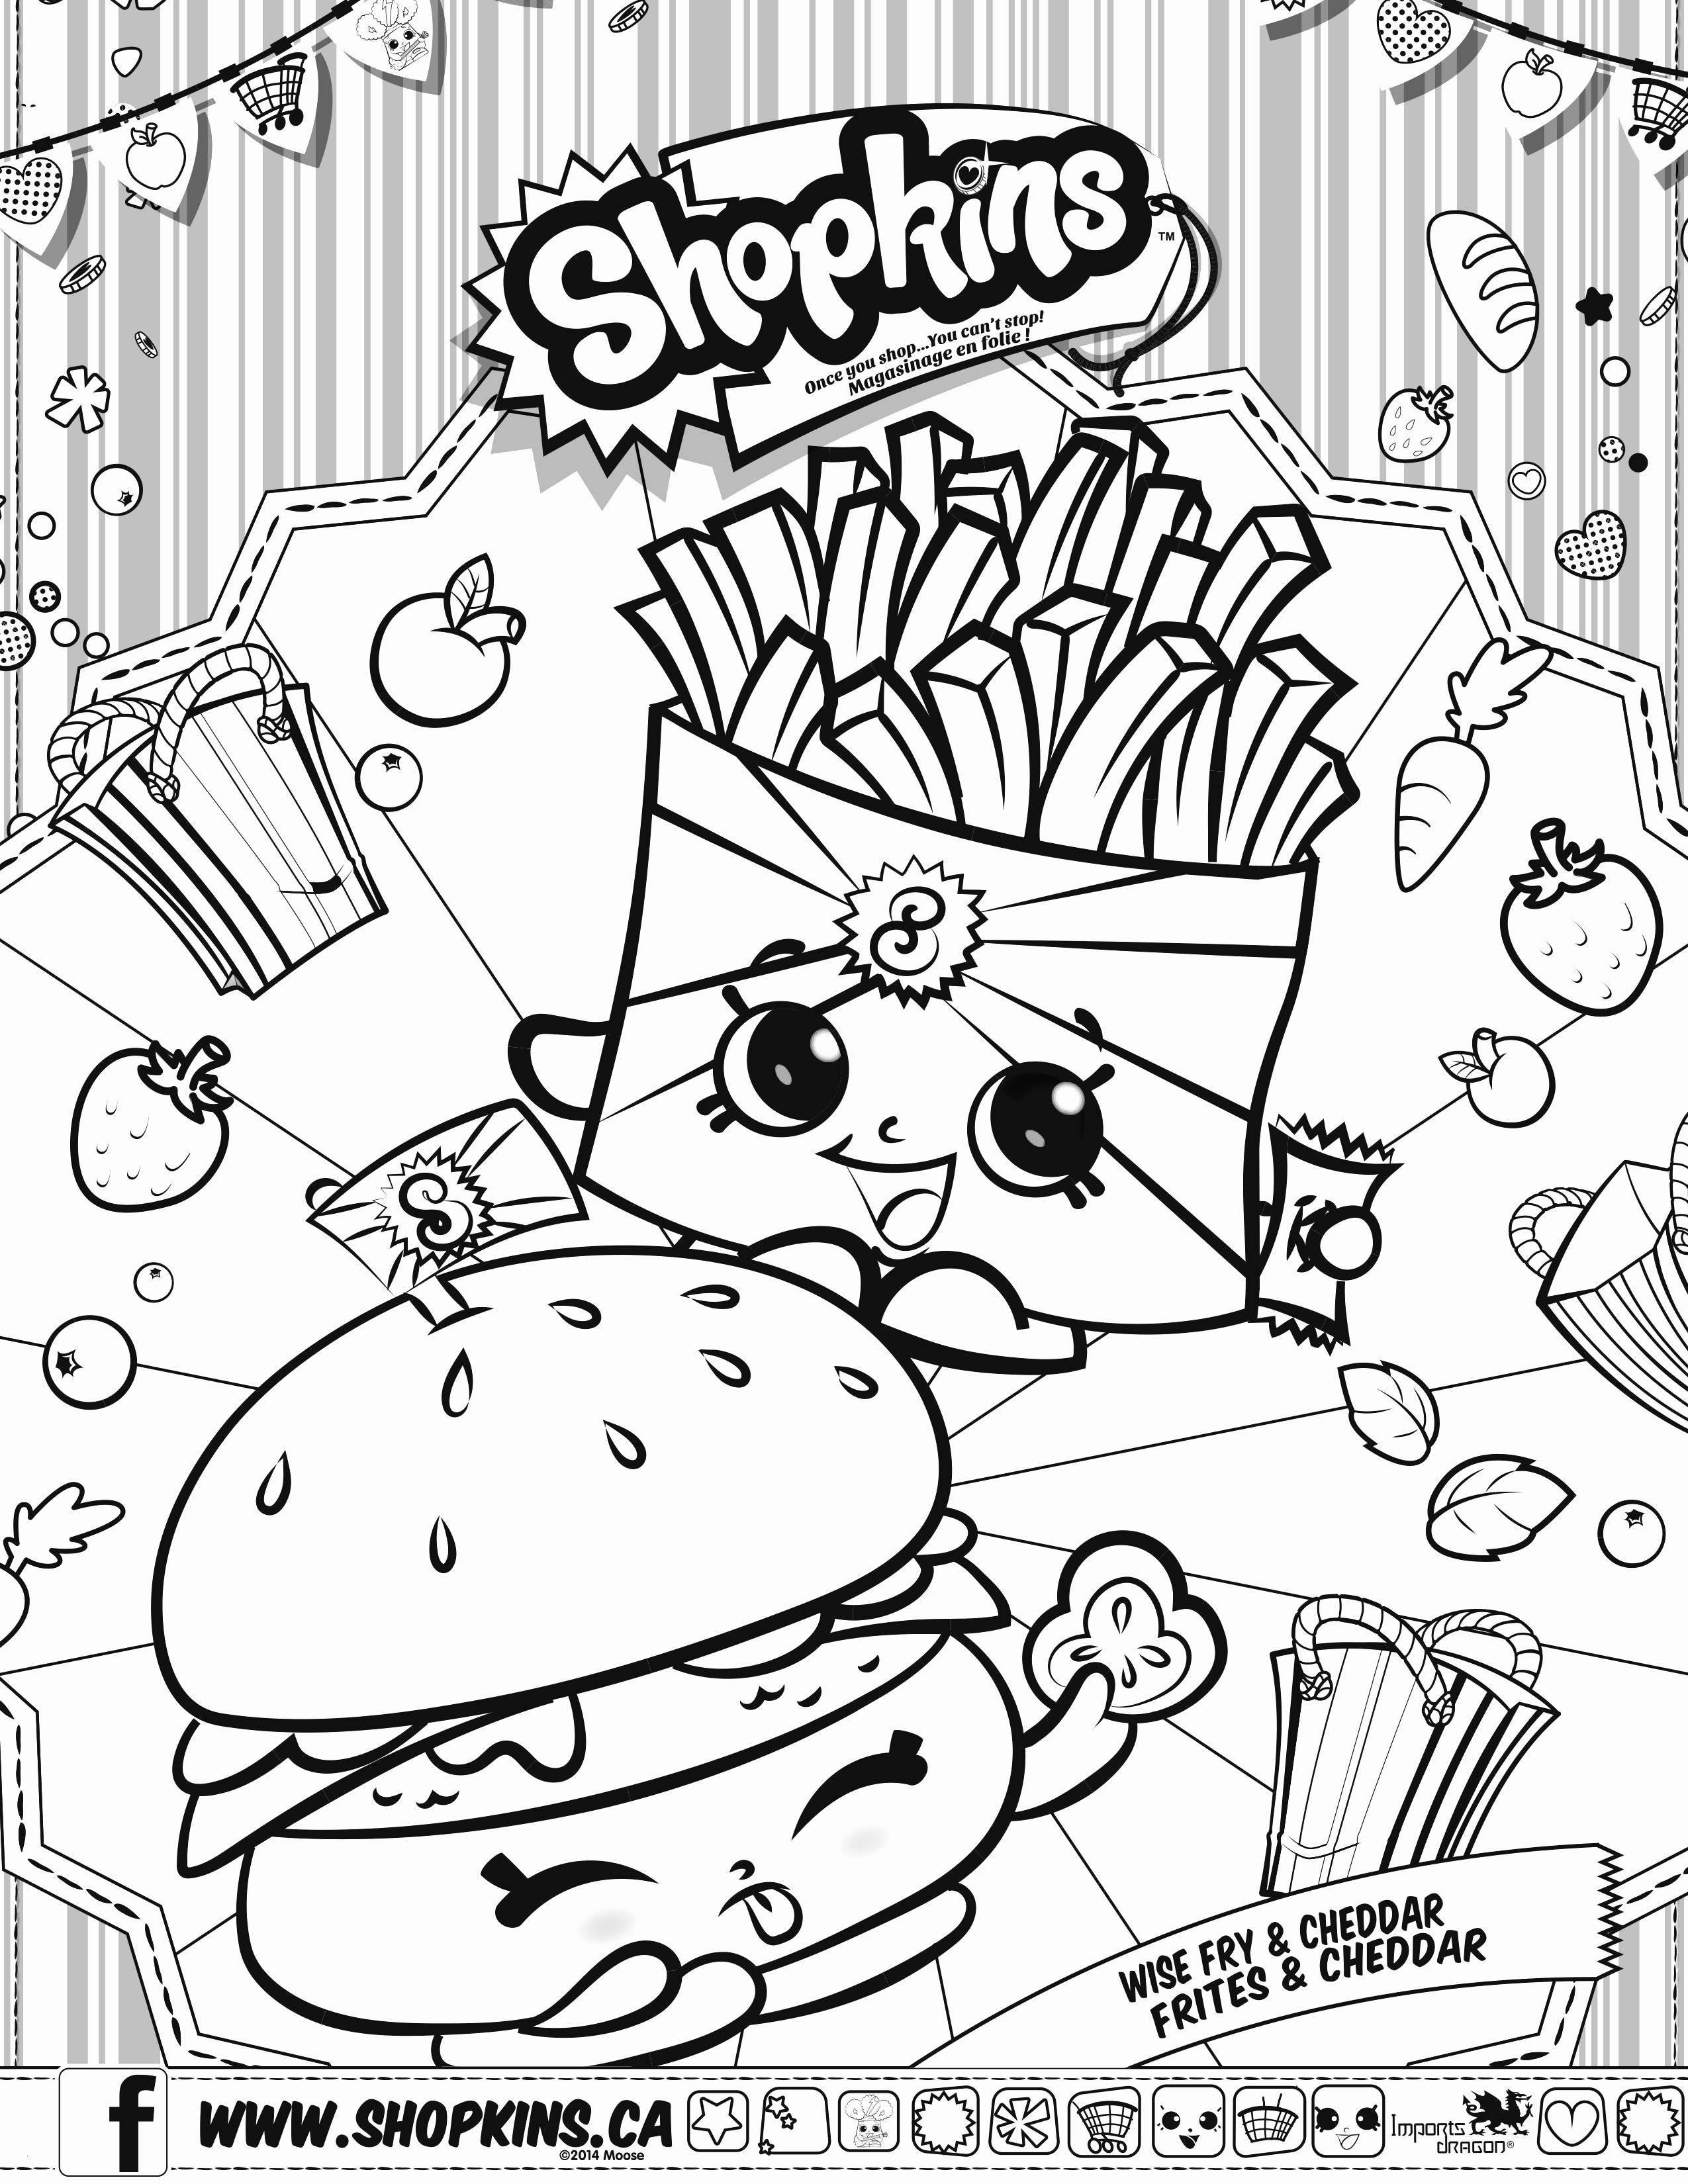 Unhealthy Food Coloring Pages  Collection 20p - Save it to your computer